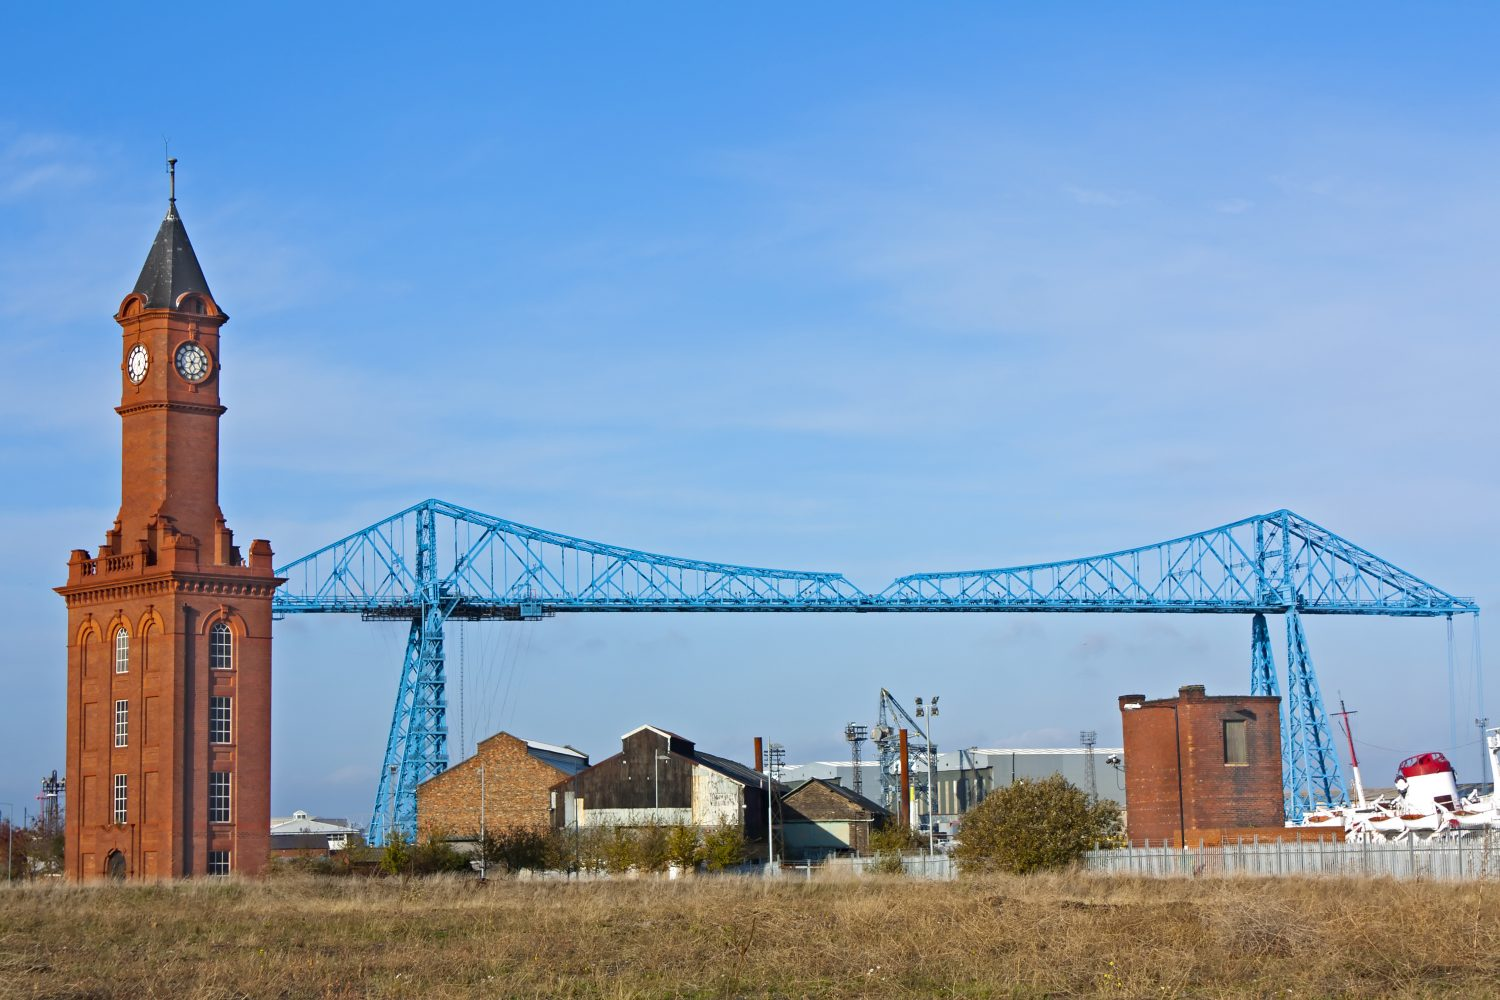 Landscape scene including a tower and blue industrial bridge.